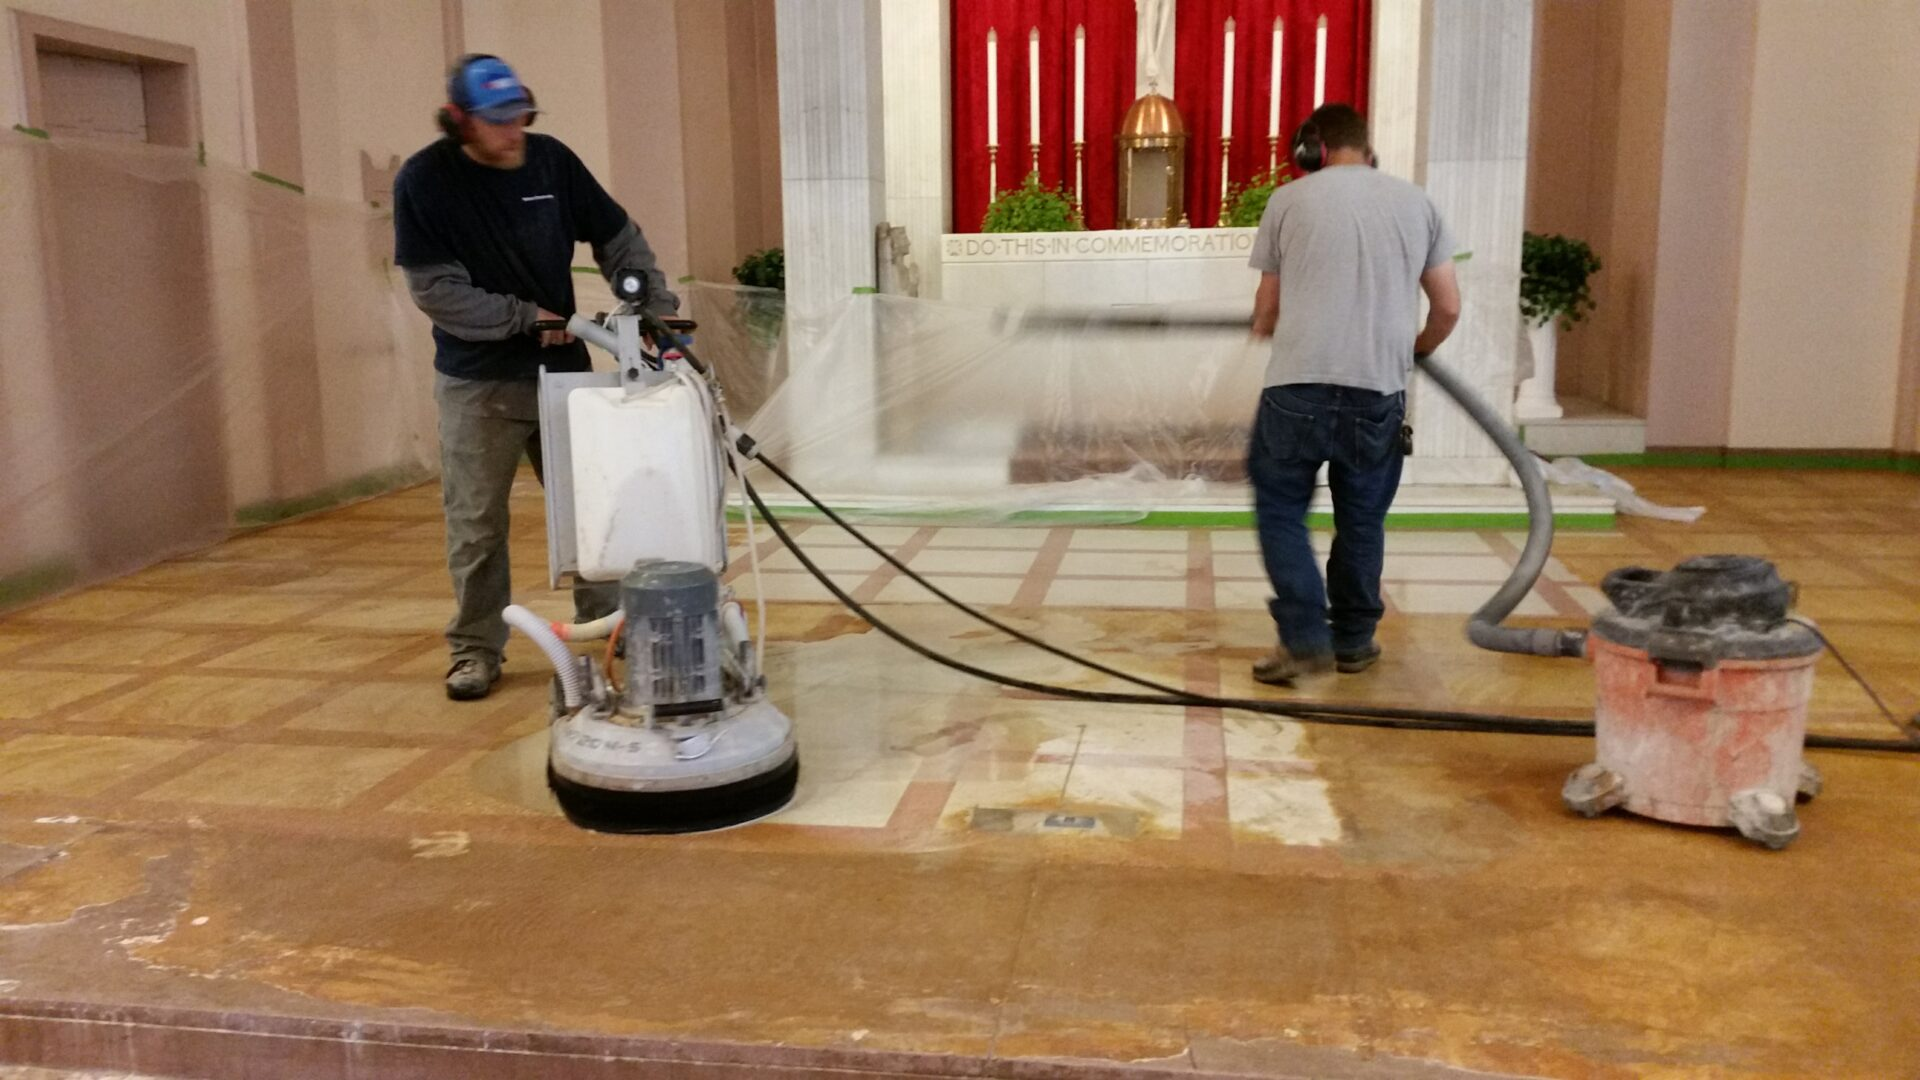 Multiple passes with our advanced equipment delivered a brilliant finish with nearly no dust. A breath of new life for an existing floor.